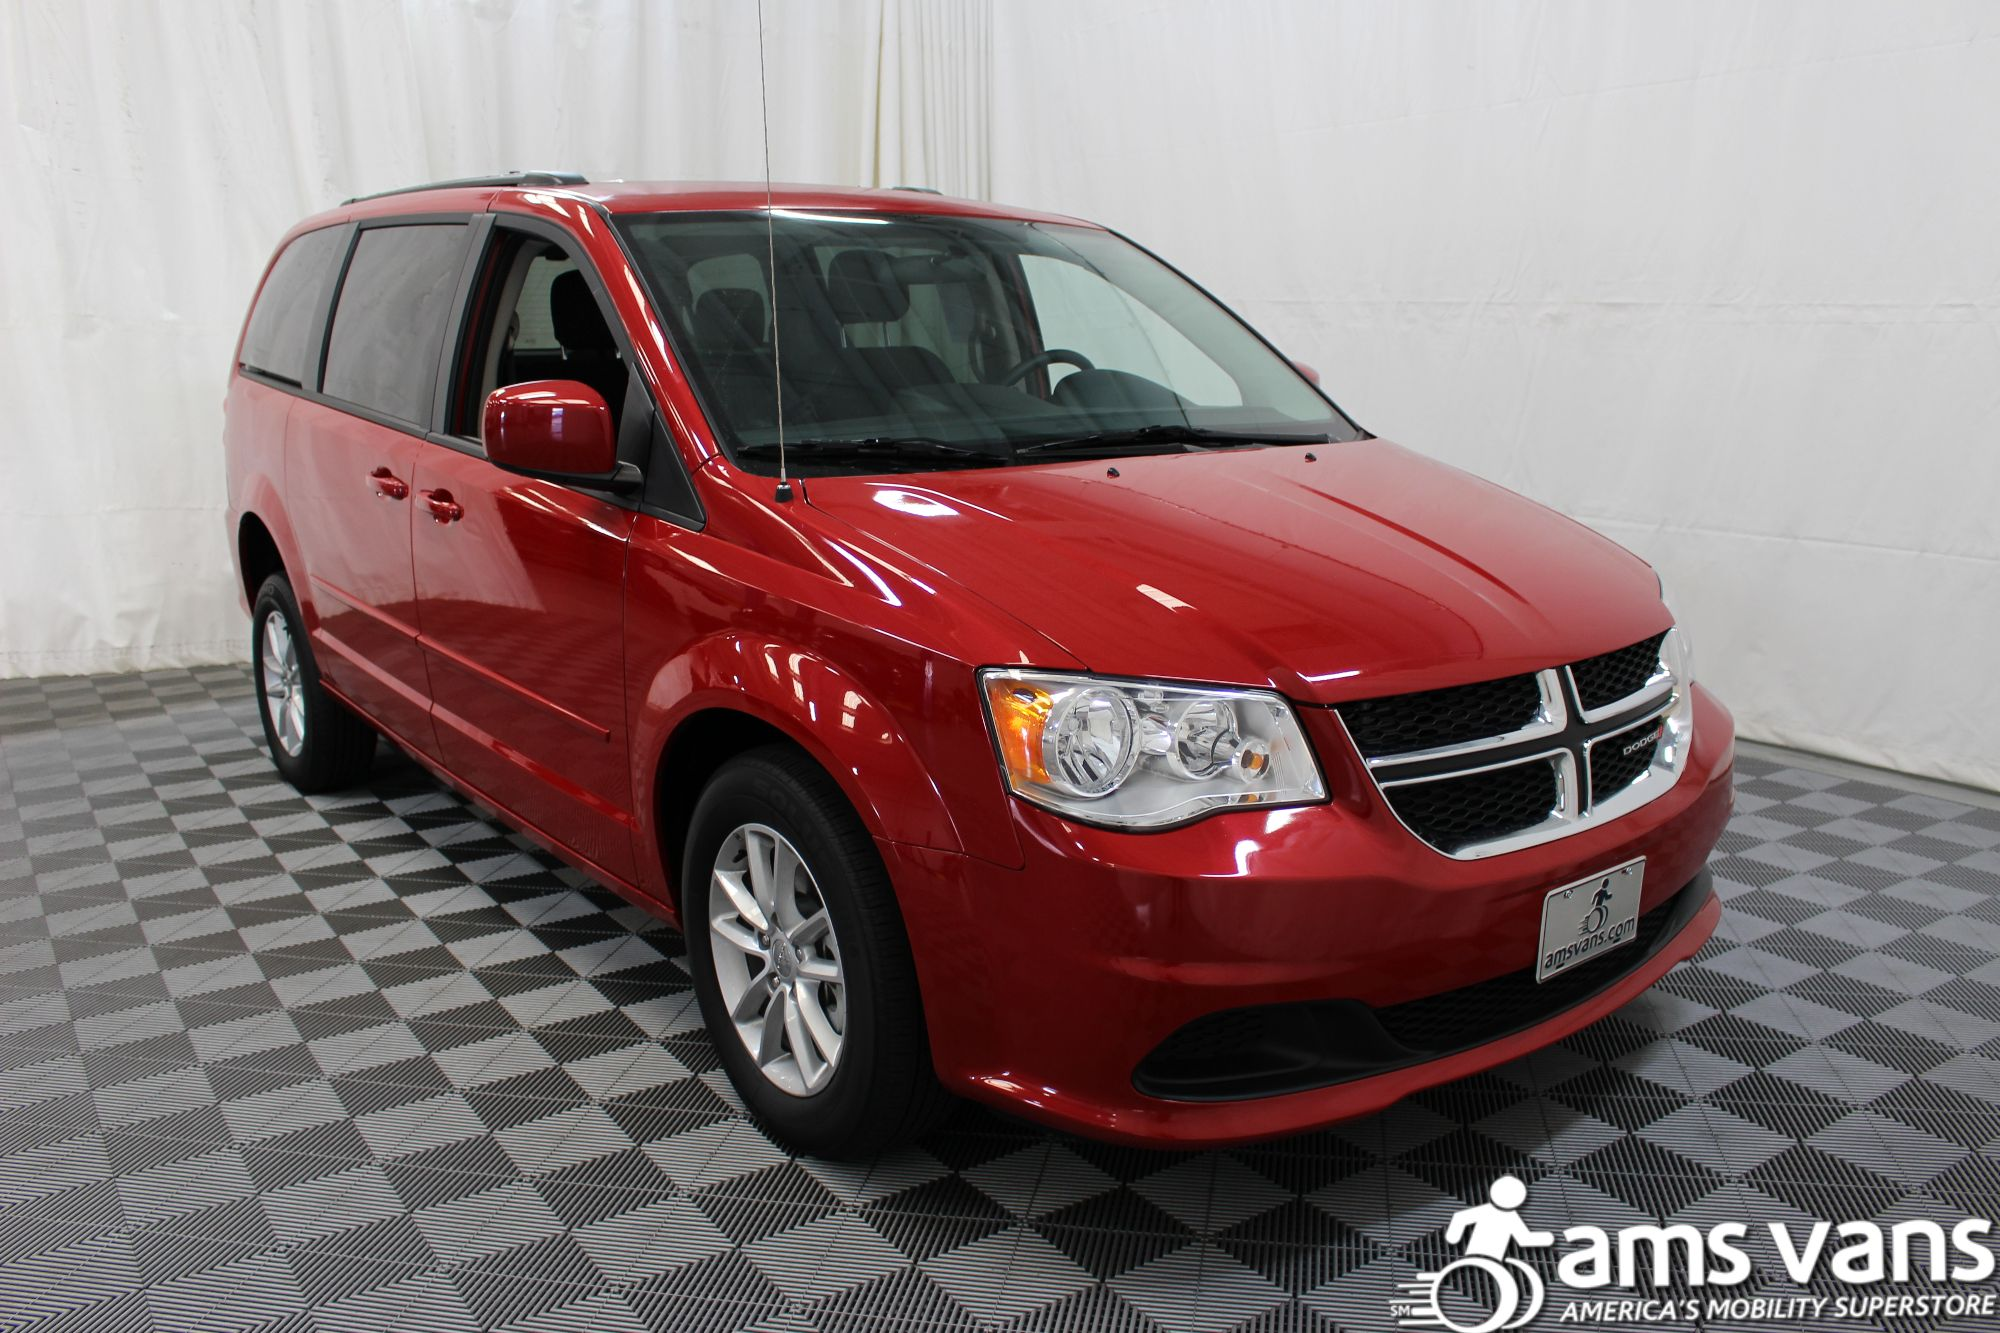 2016 Dodge Grand Caravan SXT Wheelchair Van For Sale #10